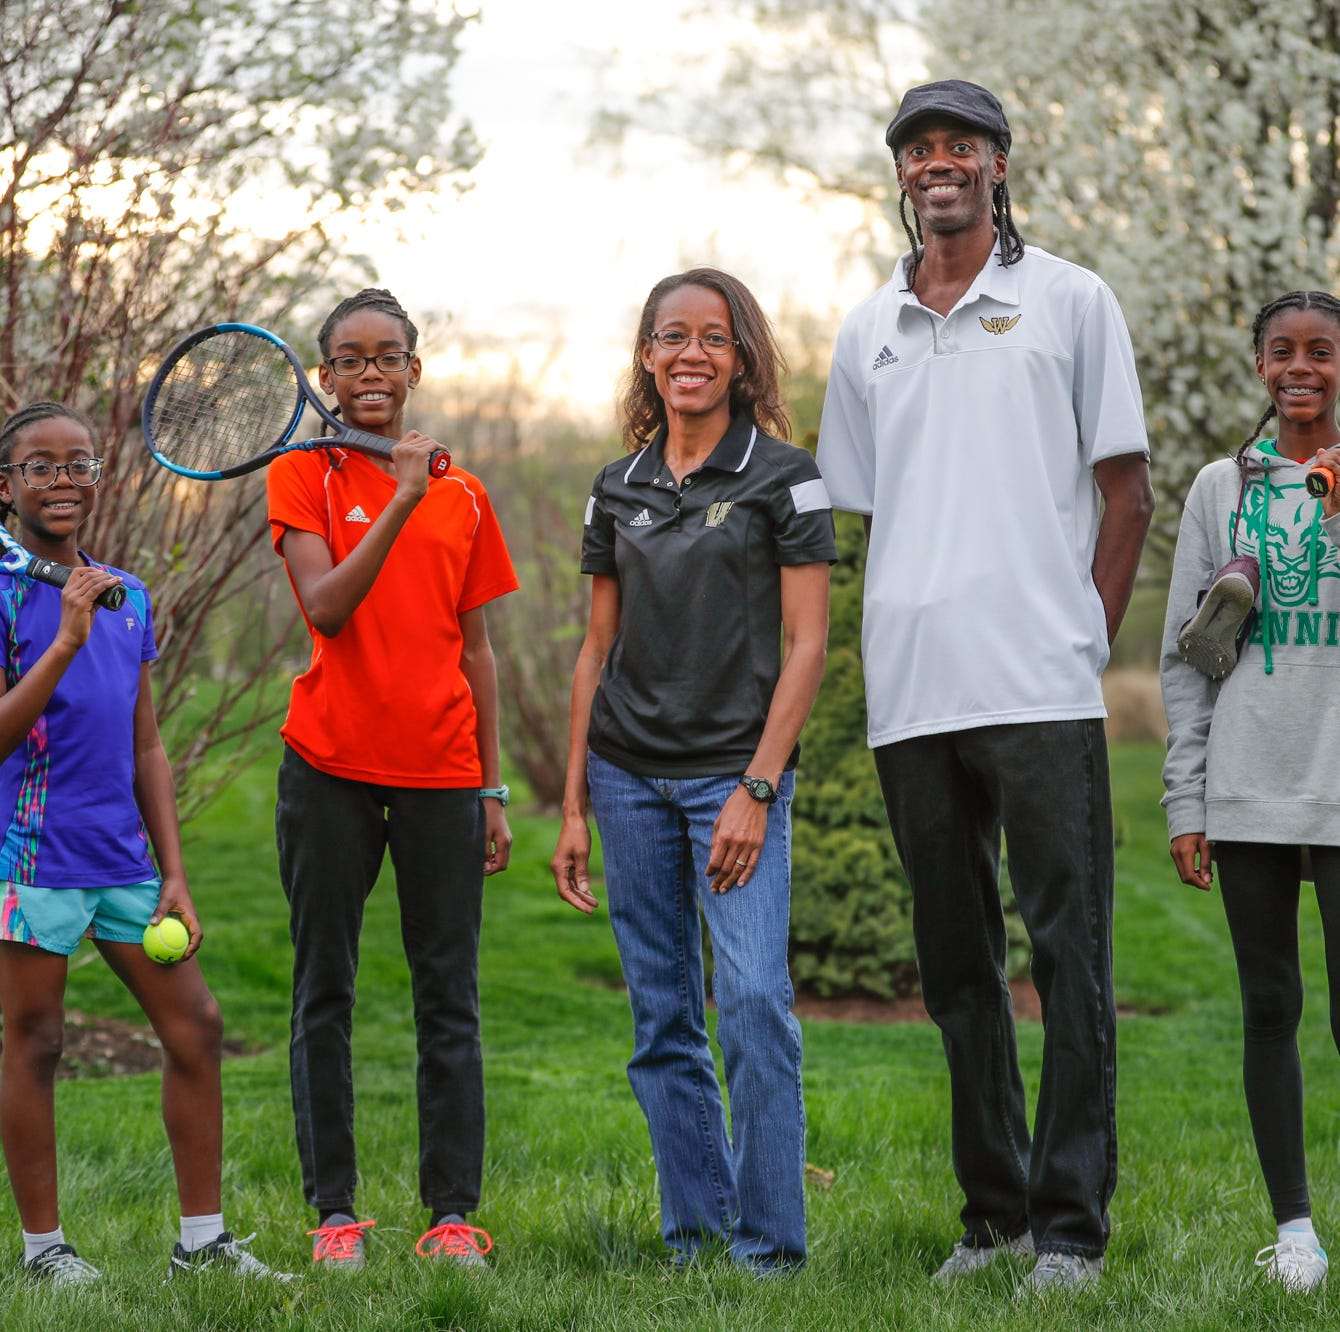 Le'gretta Smith doesn't stop. She fixes NCAA databases, coaches state champions — and is a mom of 3